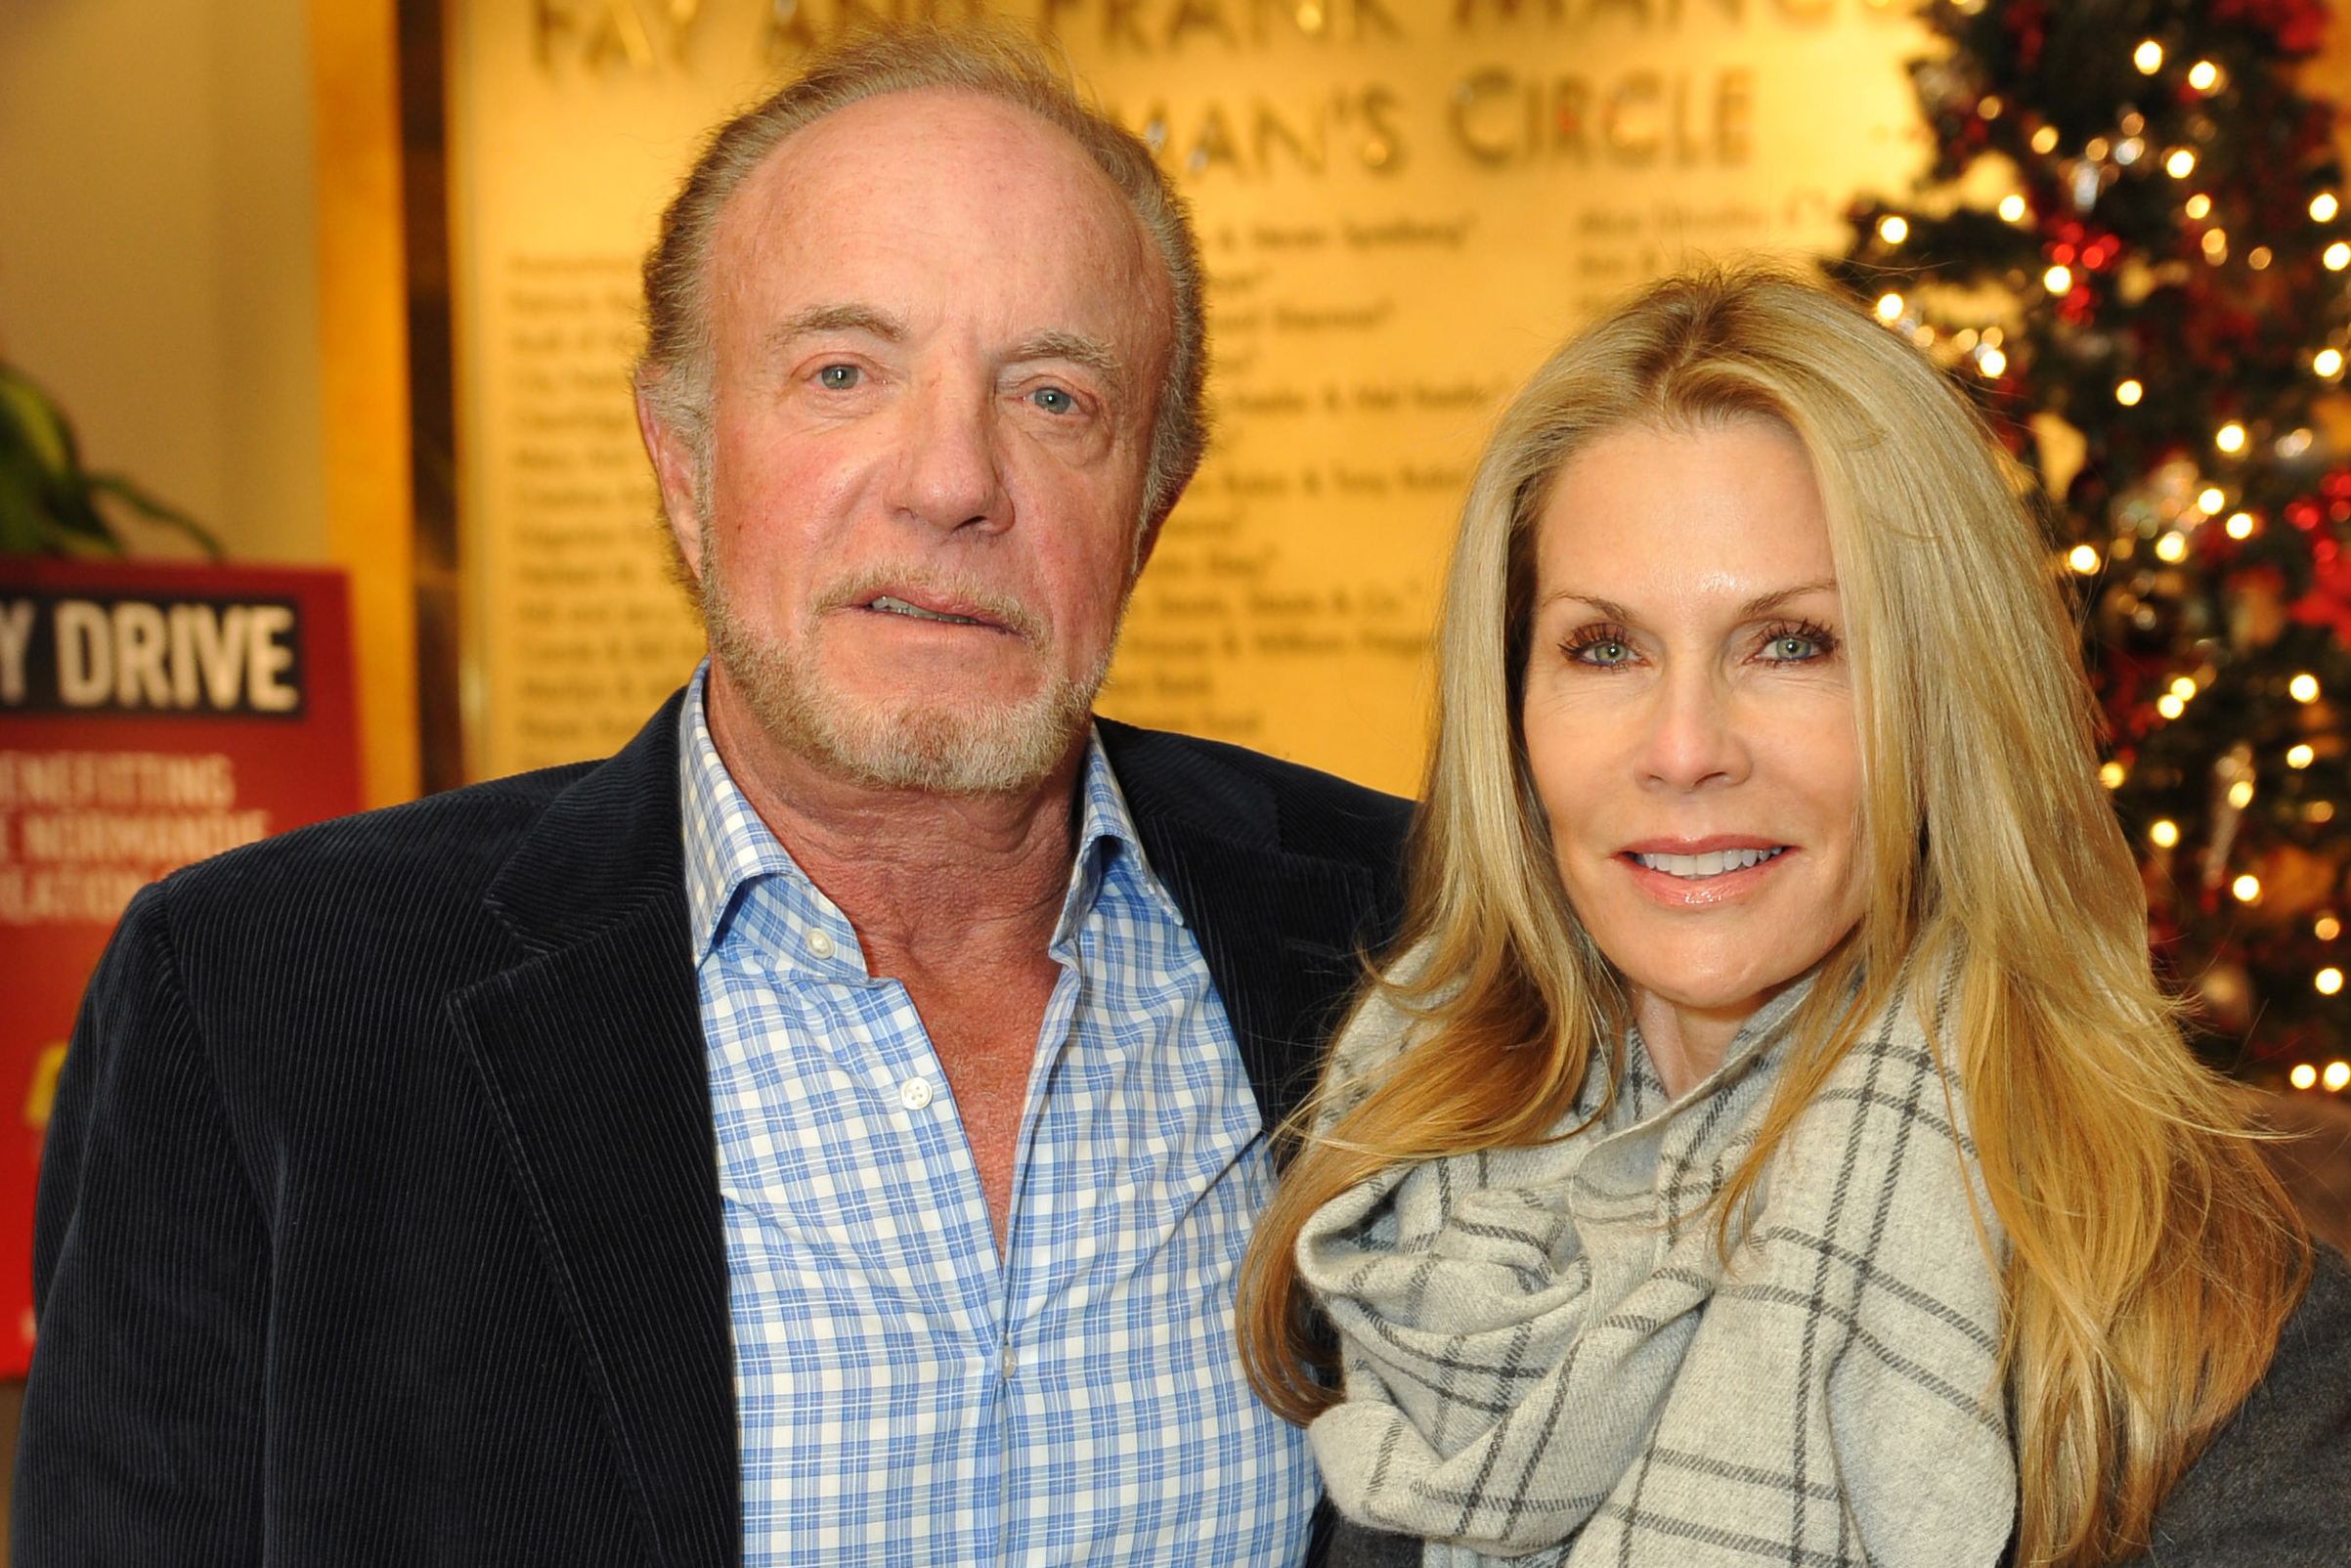 James Caan is desperate for cash amid messy divorce | Page Six